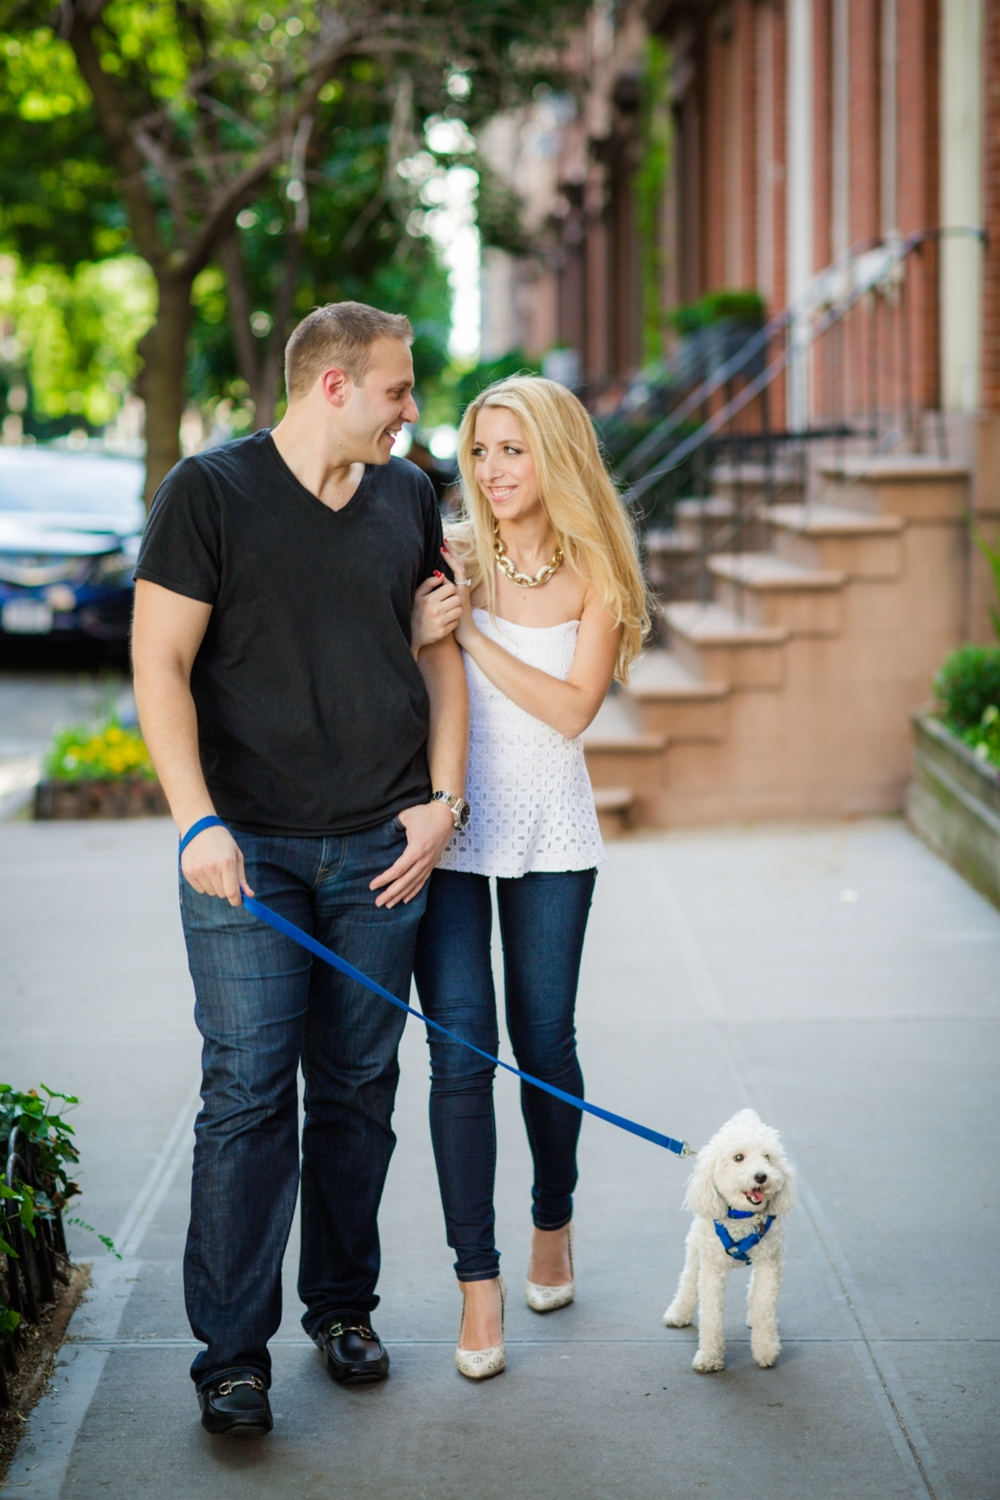 Elana and Marc with their dog Arri during their Meatpacking Engagement shoot.